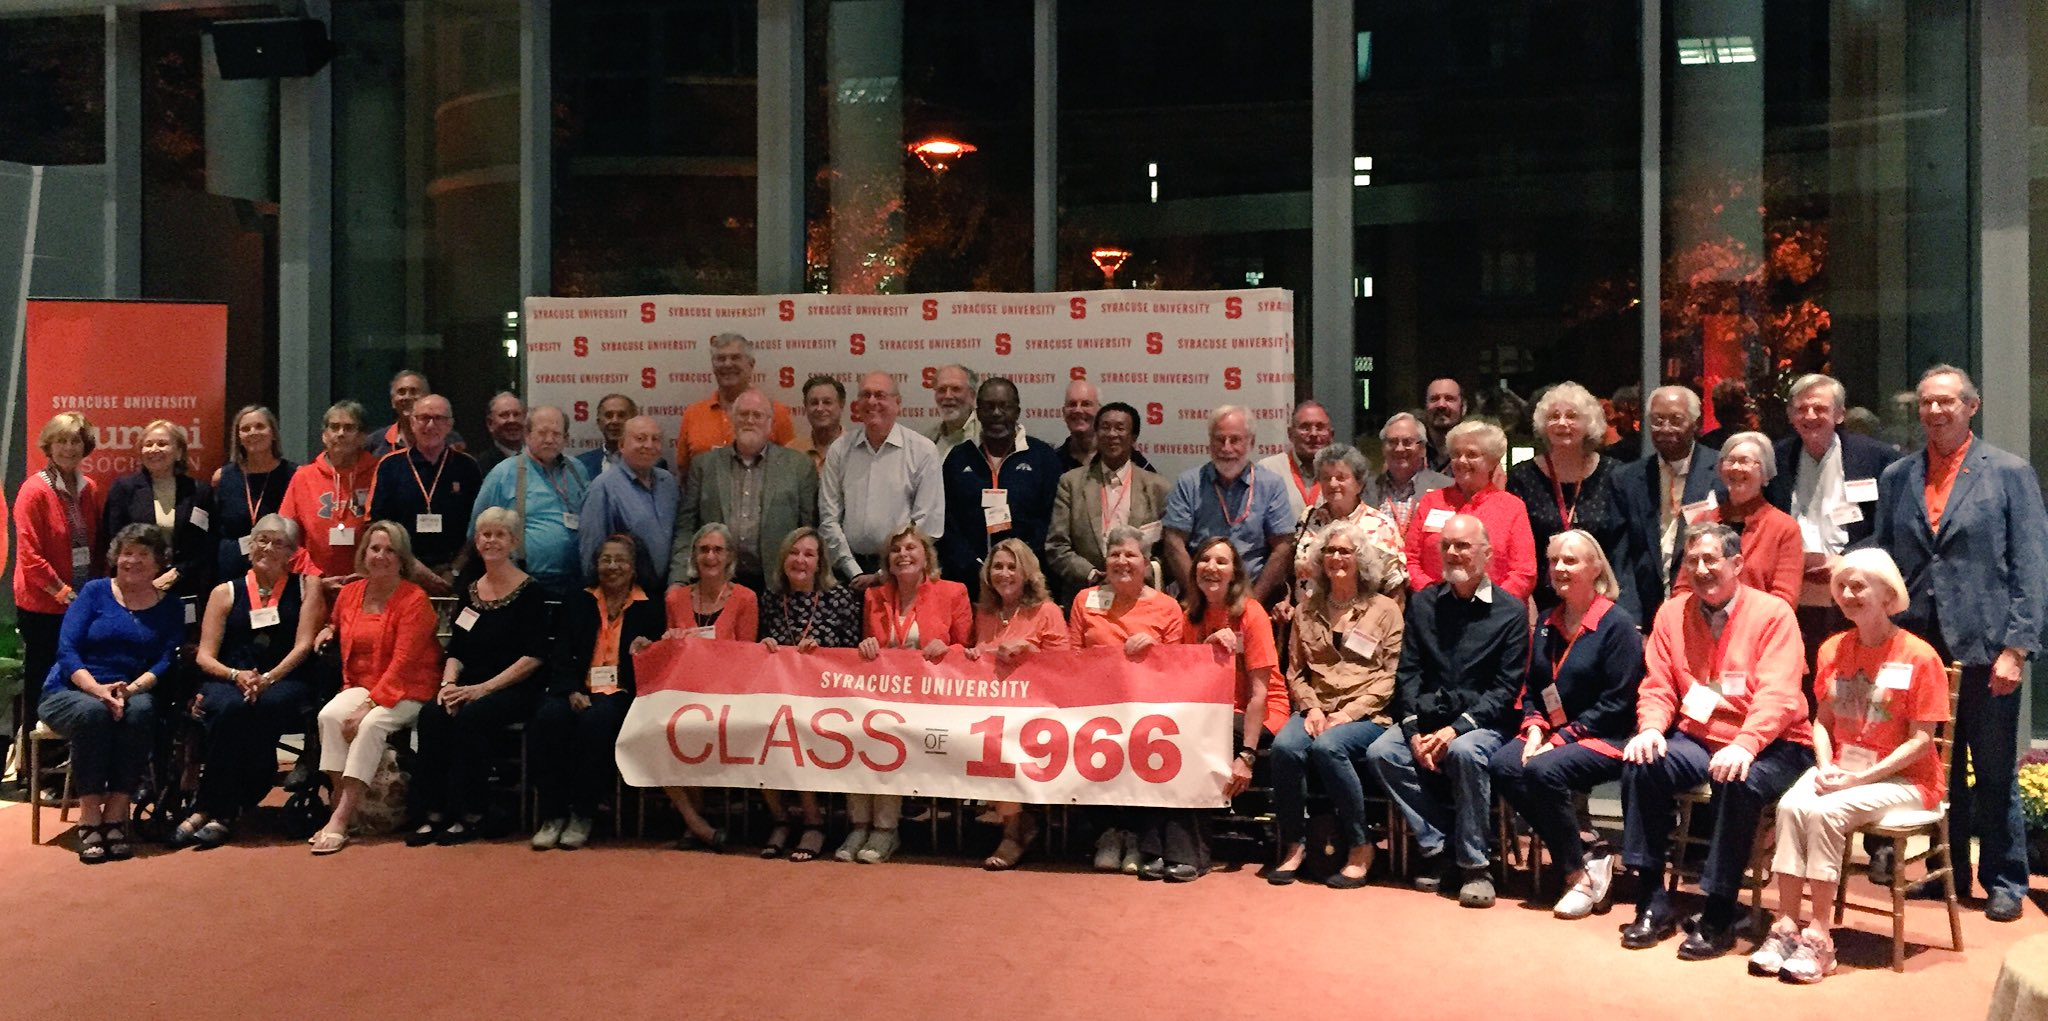 So many members of our Class of '66 came back for their 50th. You'll see some familiar faces in here! #OrangeCentral https://t.co/bdXzECe9j8